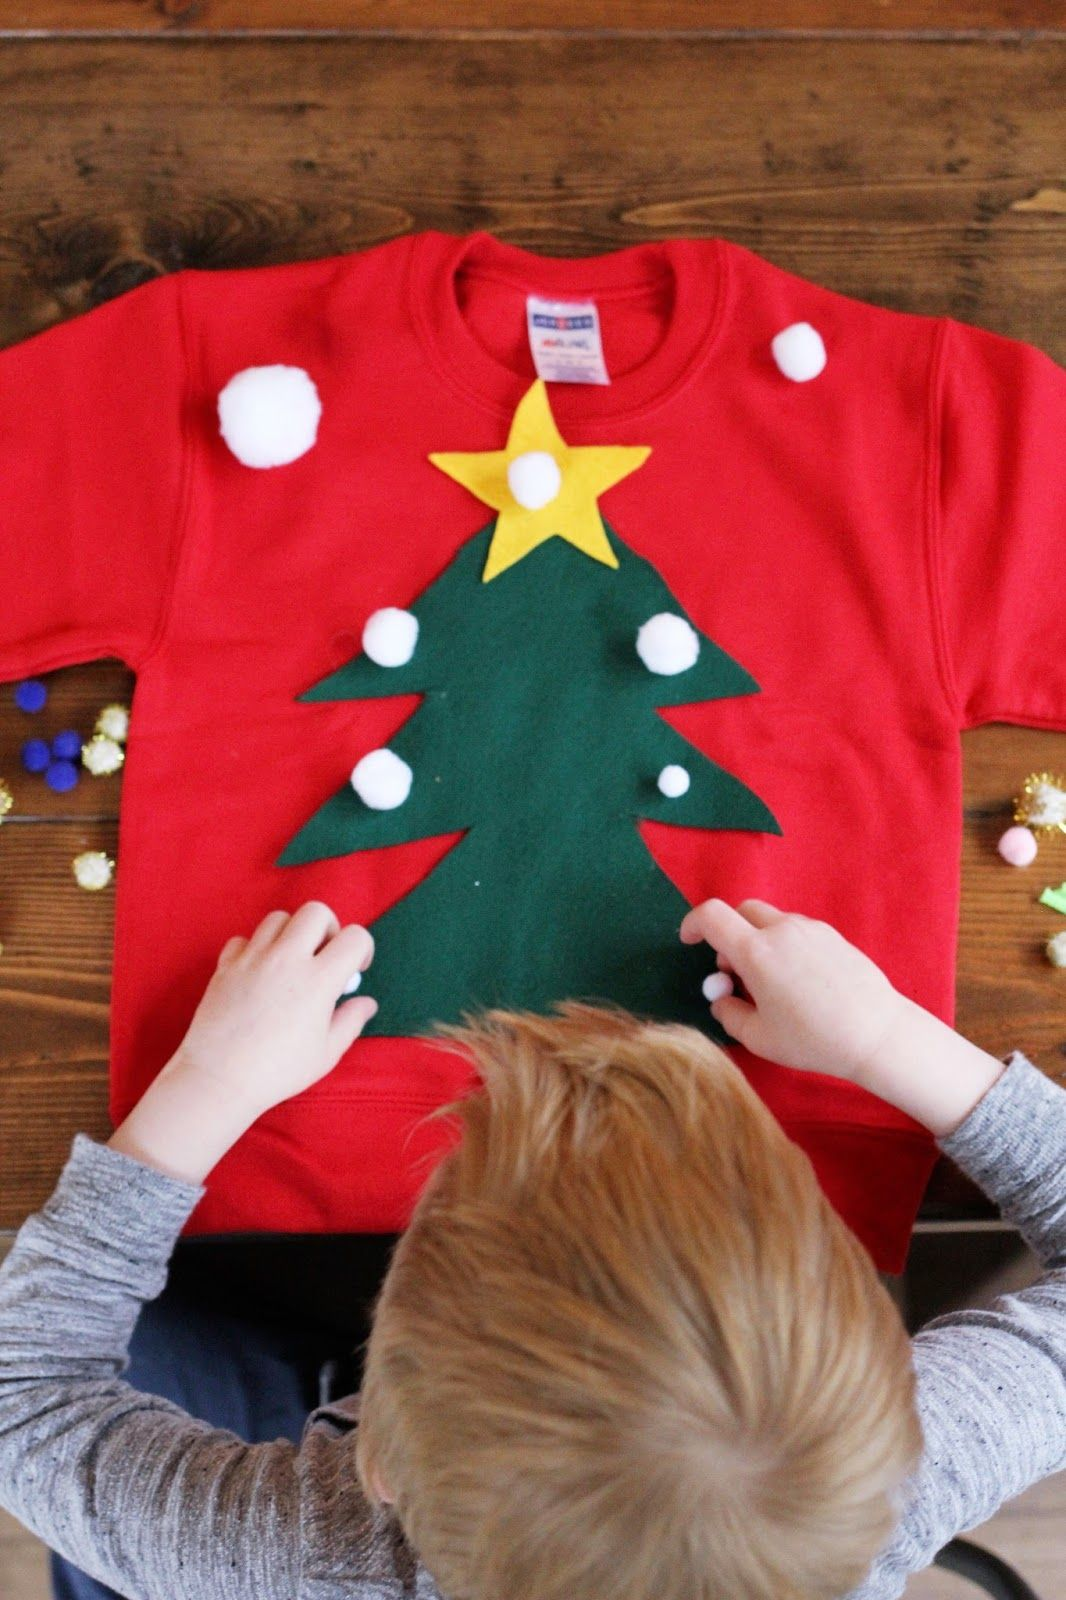 DIY Ugly Christmas Sweater For Kids | Ugly sweater ideas | Pinterest ...